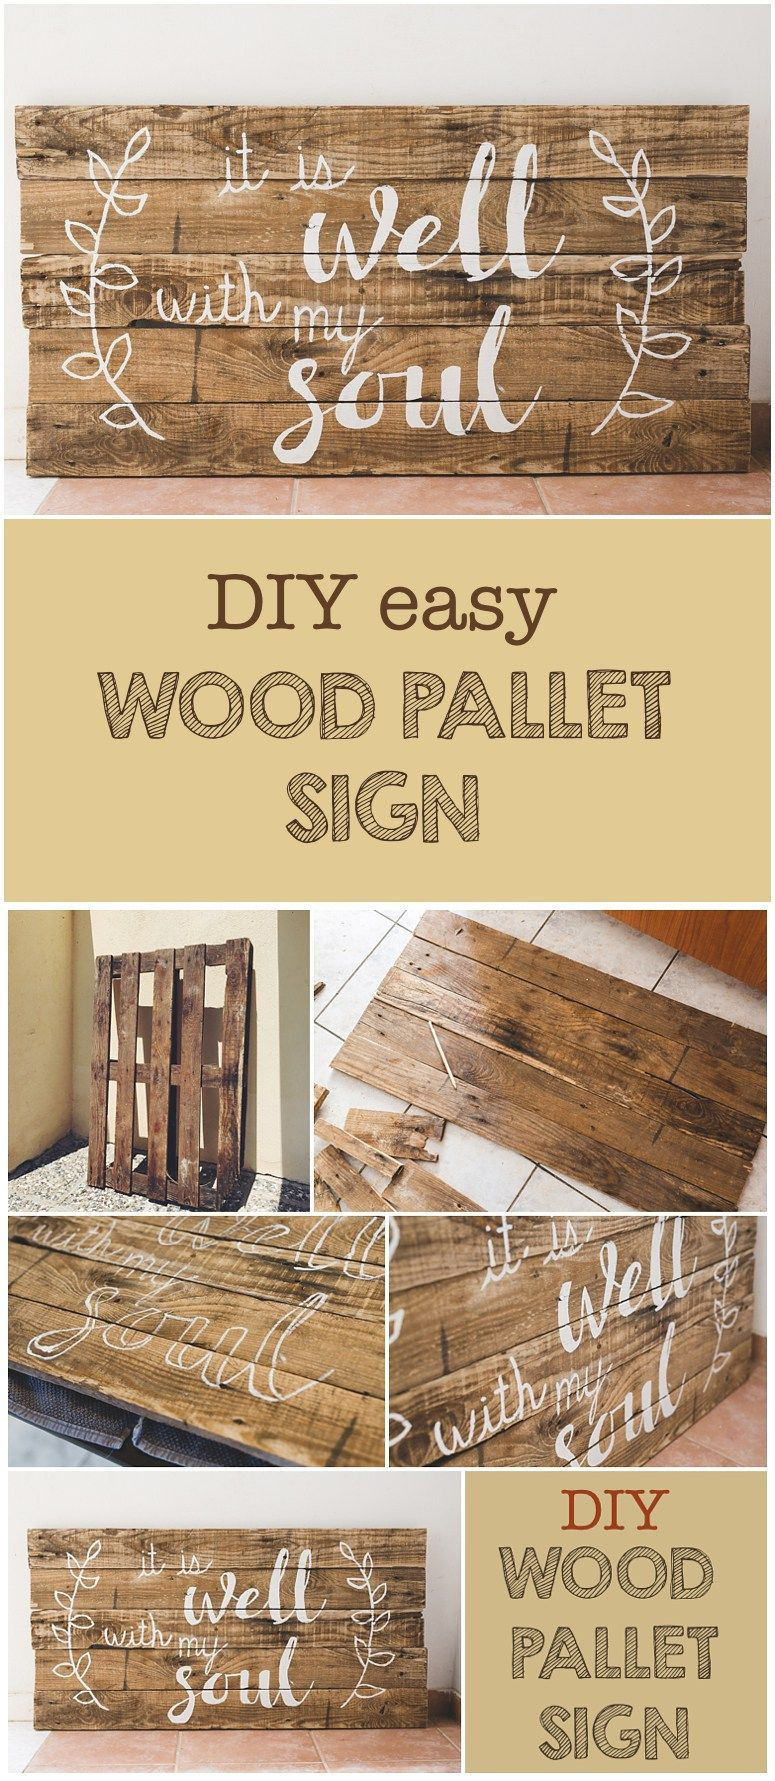 DIY Wood Pallet Sign AND free printable | Diy wood, Wood pallets and ...